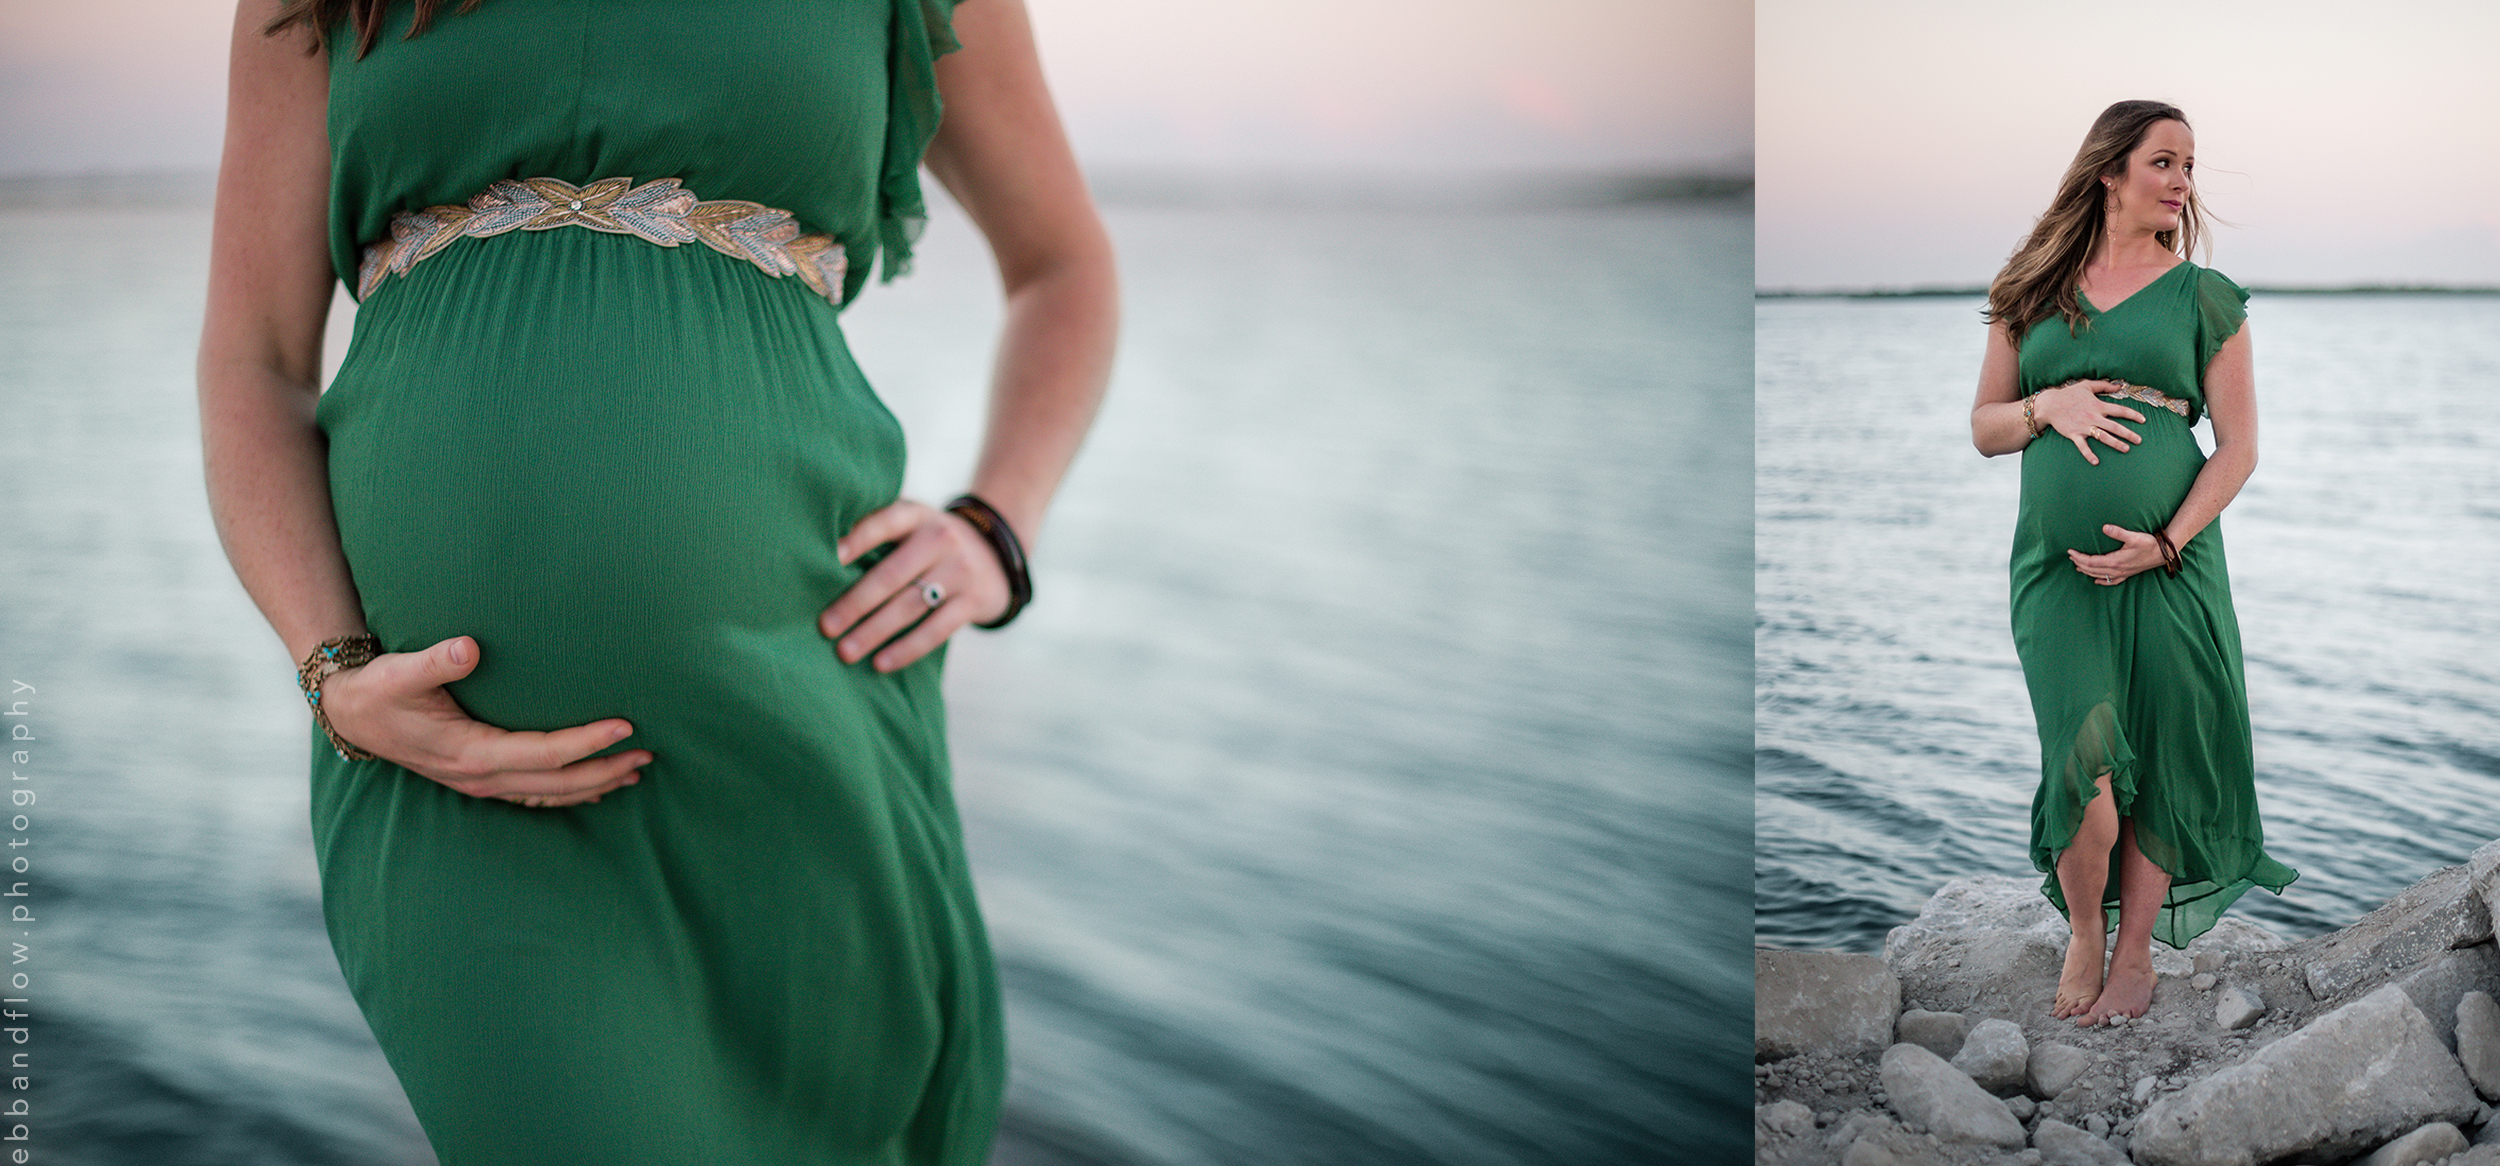 dreamy walk along the lagoon - vero beach maternity photographer - ebb and flow photography